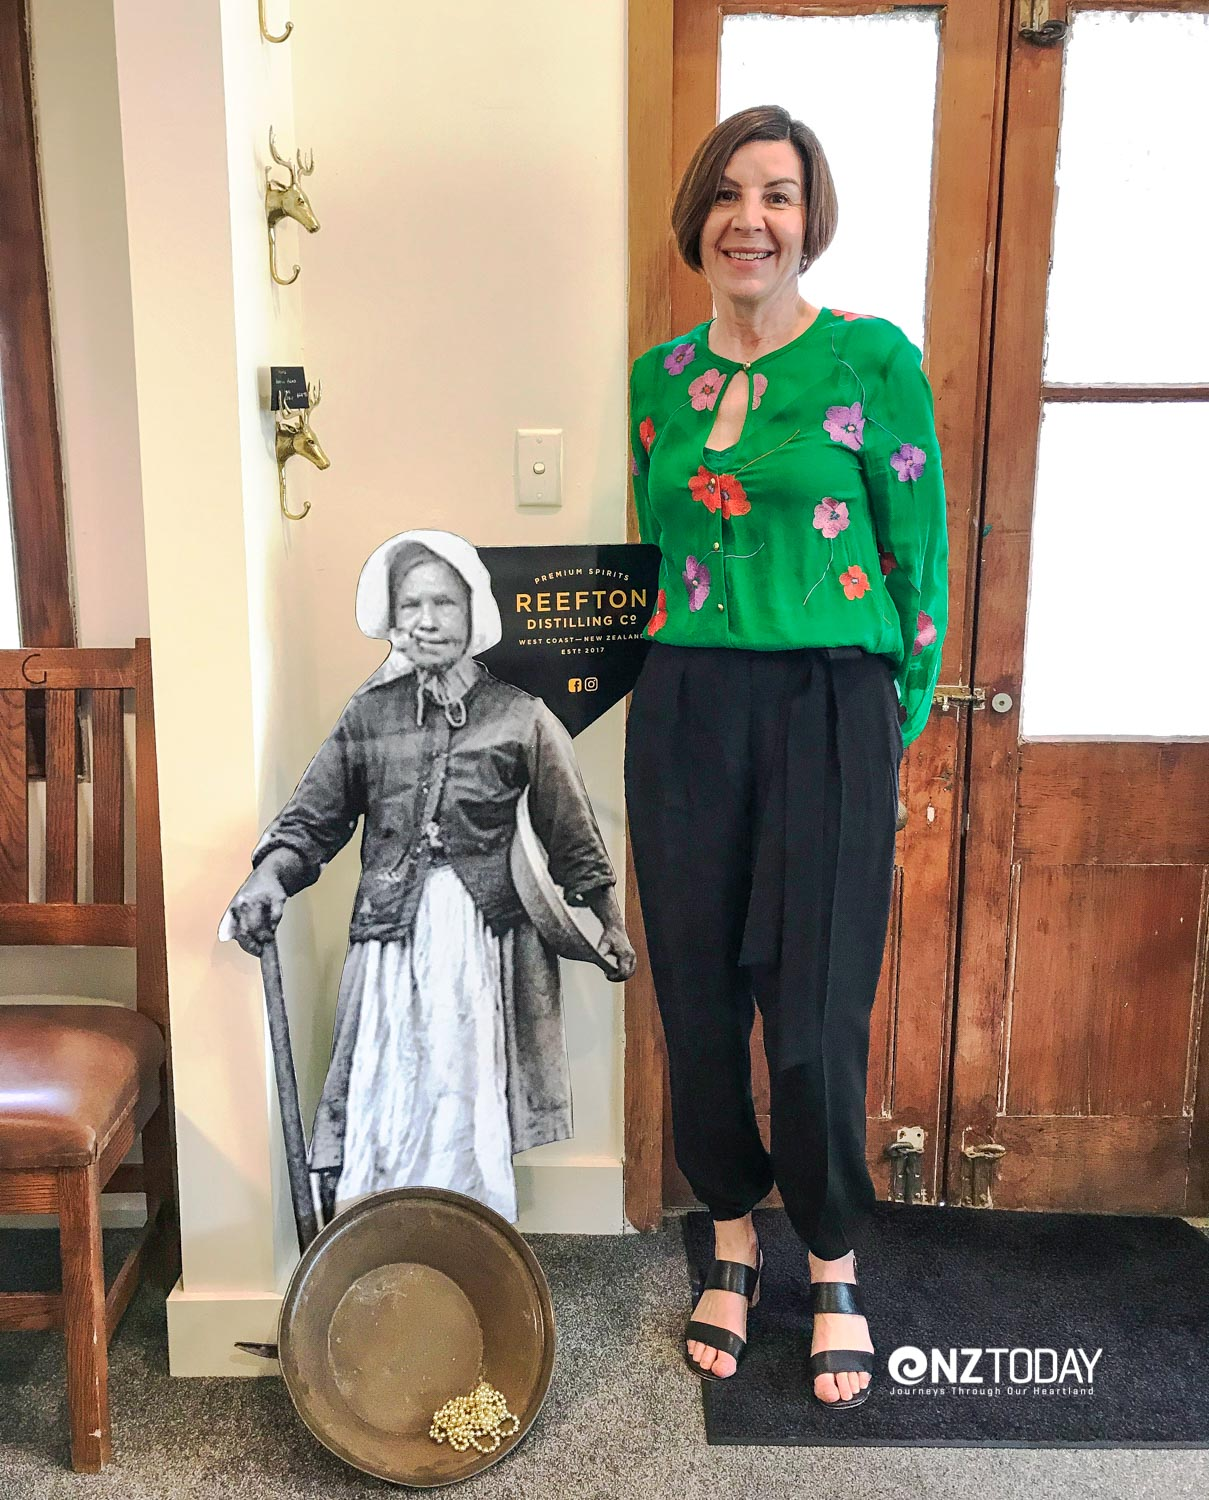 Patsy Bass, Managing Director, Reefton Distilling Co. stands alongside an image of Bridget Goodwin, 'Little Biddy'